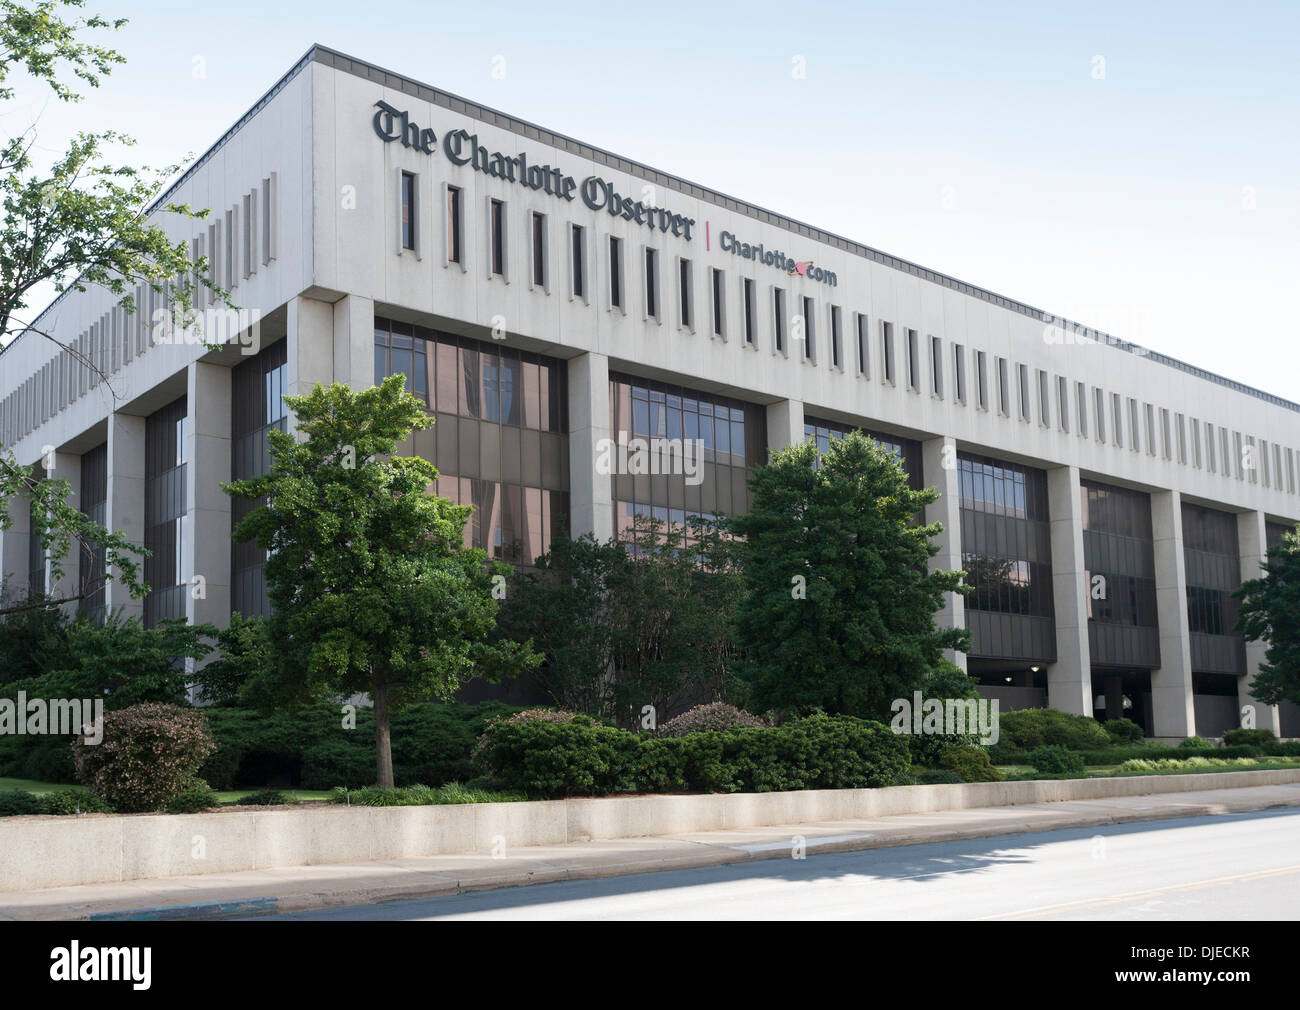 The Charlotte Observer newspaper building in downtown Charlotte, South Carolina, USA - Stock Image